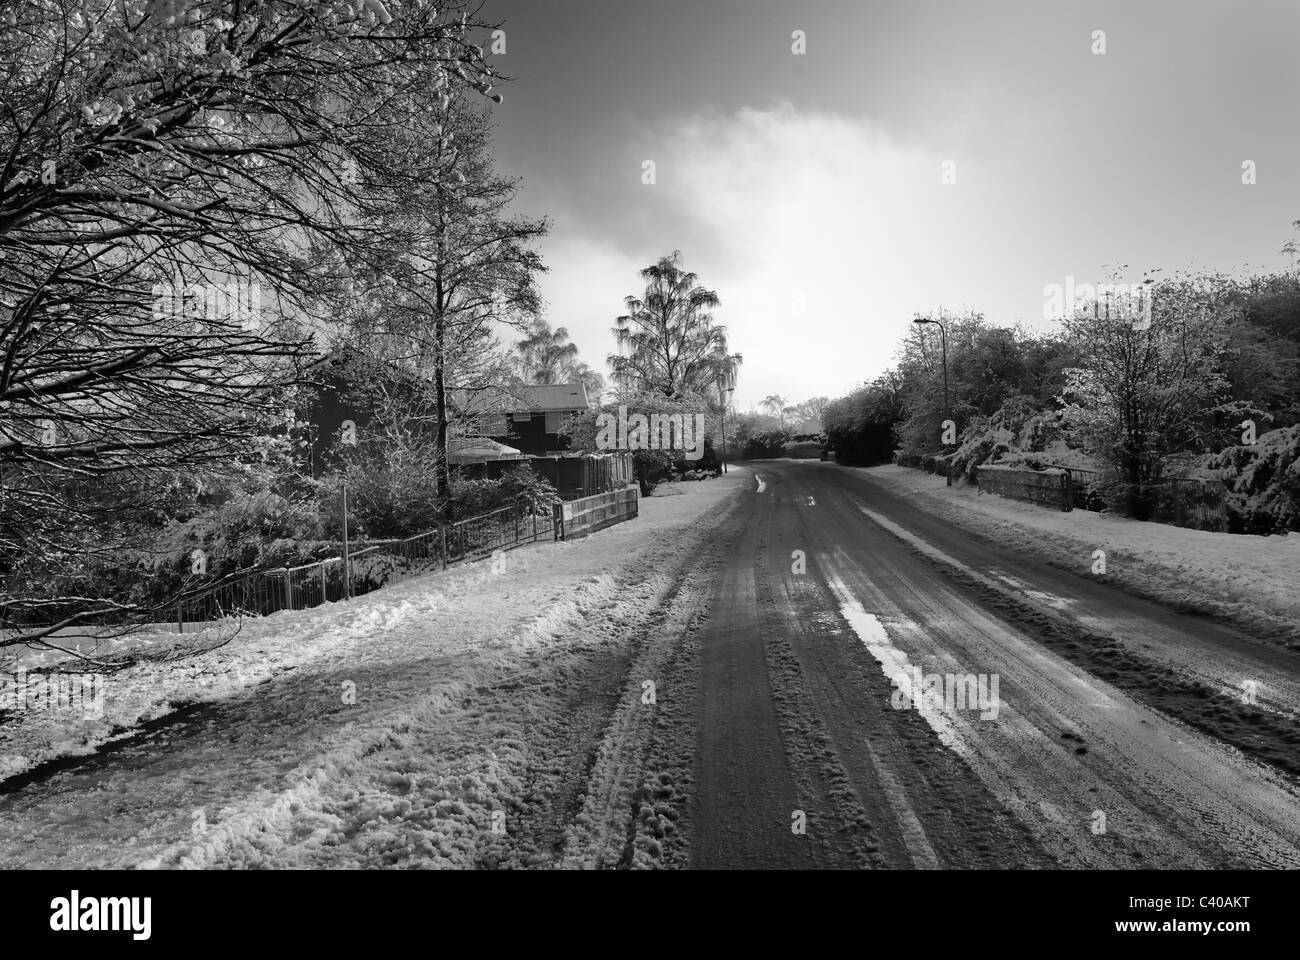 Icy roads. Black/white photograph of Guttridge Lane, Tadley, Hampshire, England, UK, United Kingdom - Stock Image